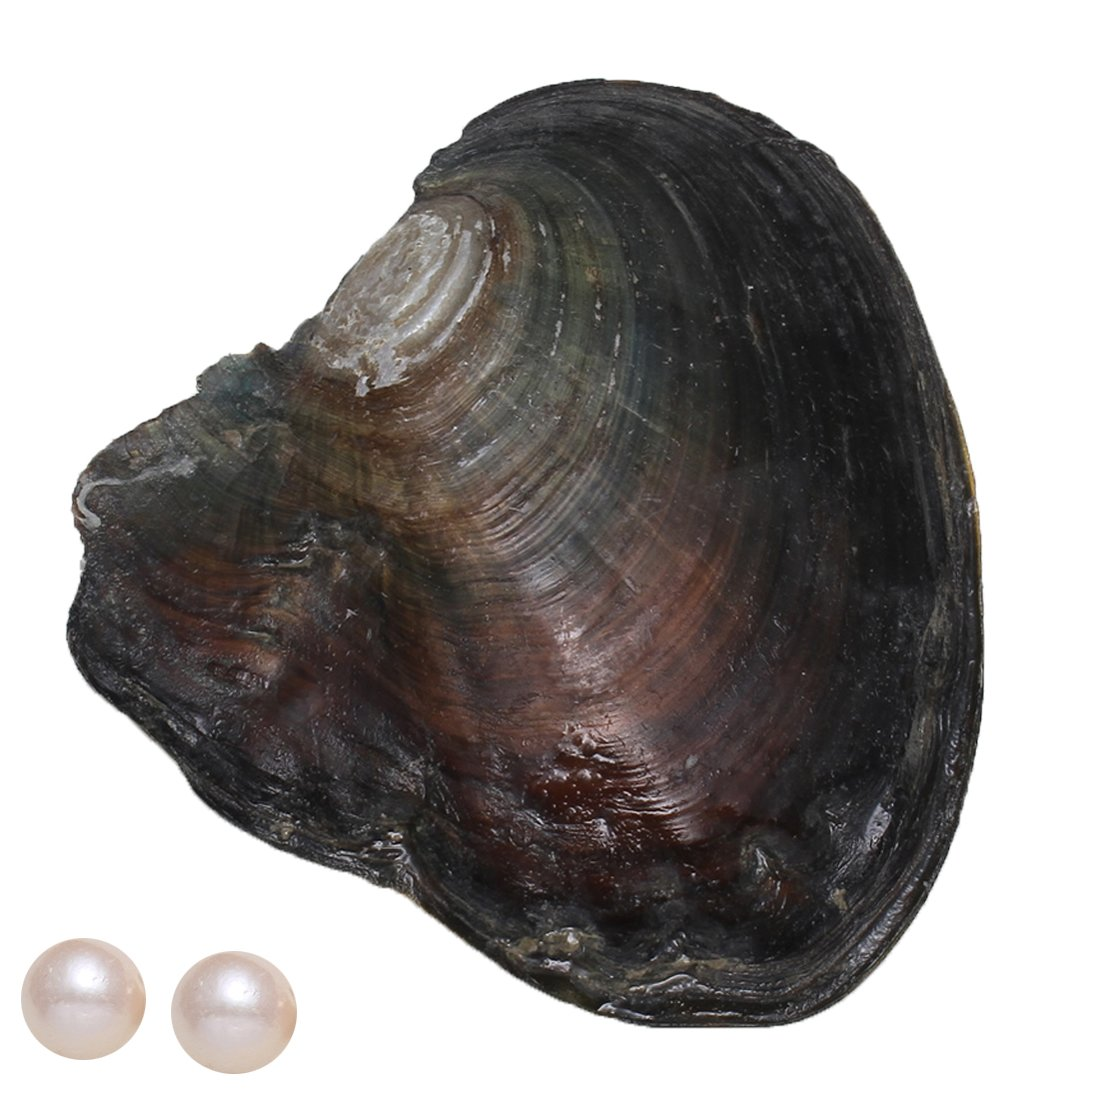 11-12mm Freshwater Oysters Twins, Oysters with Pearls Inside, Love Wish Pearl Kit Freshwater Pearl One Pearl Oyster With Two Pearls (White)